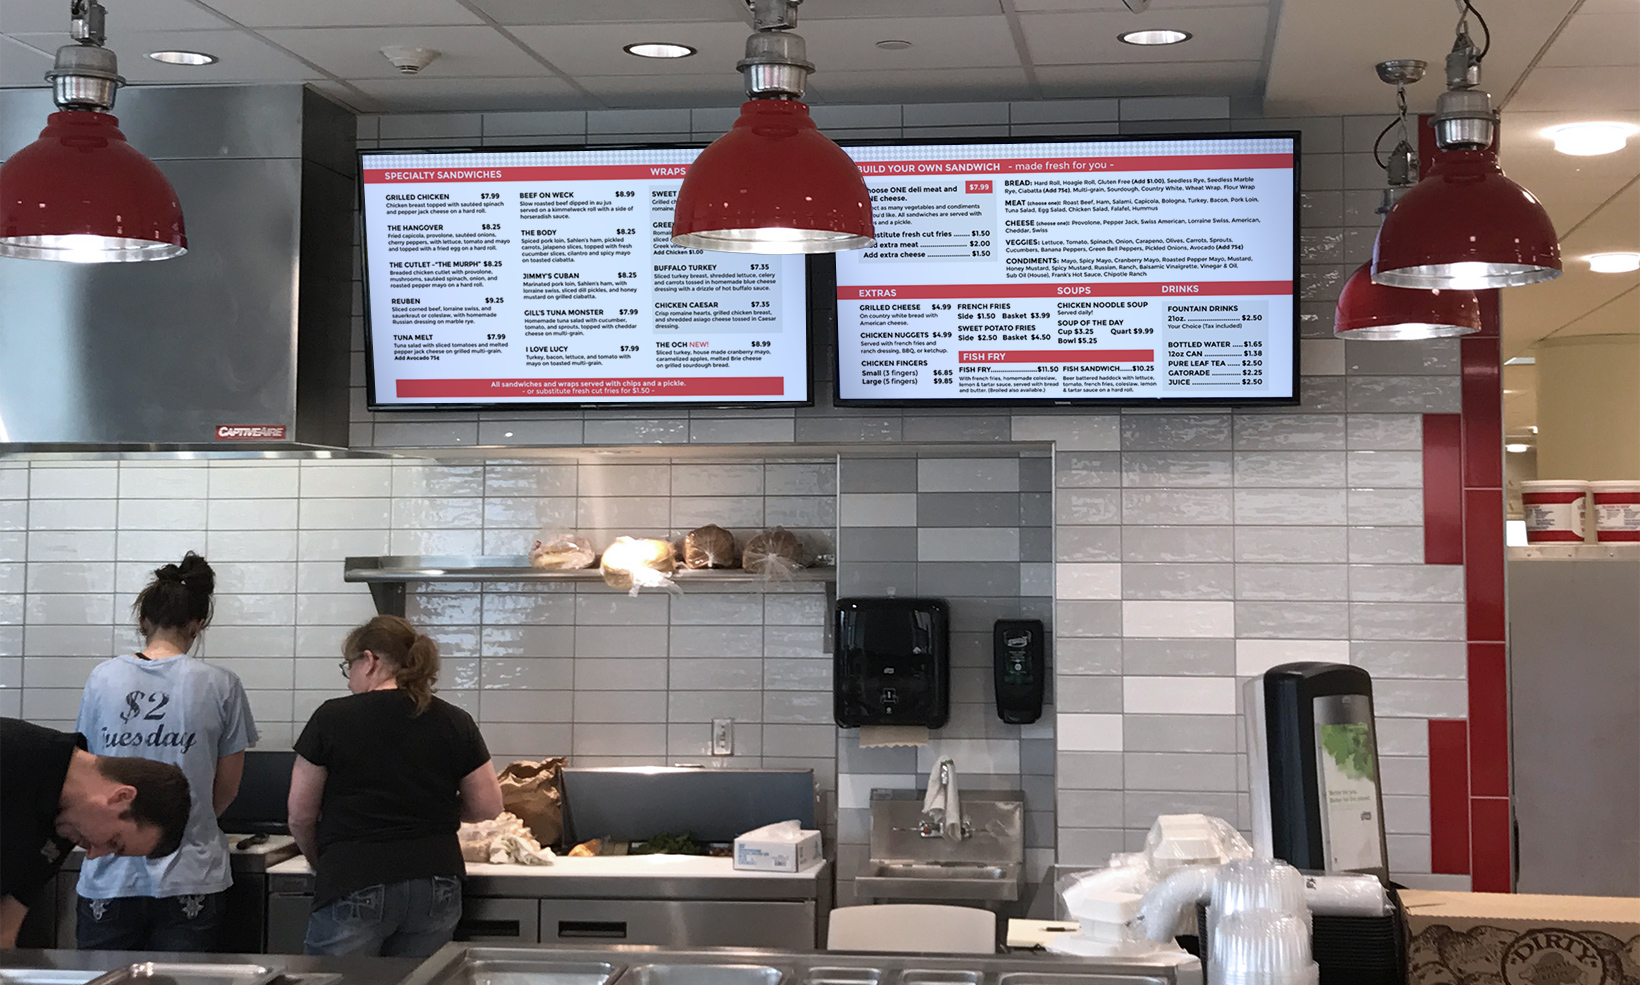 OW|EN designed a digital version of the Joe's Deli menu for a set of TV displays in their Oishei location, making updates easy to implement